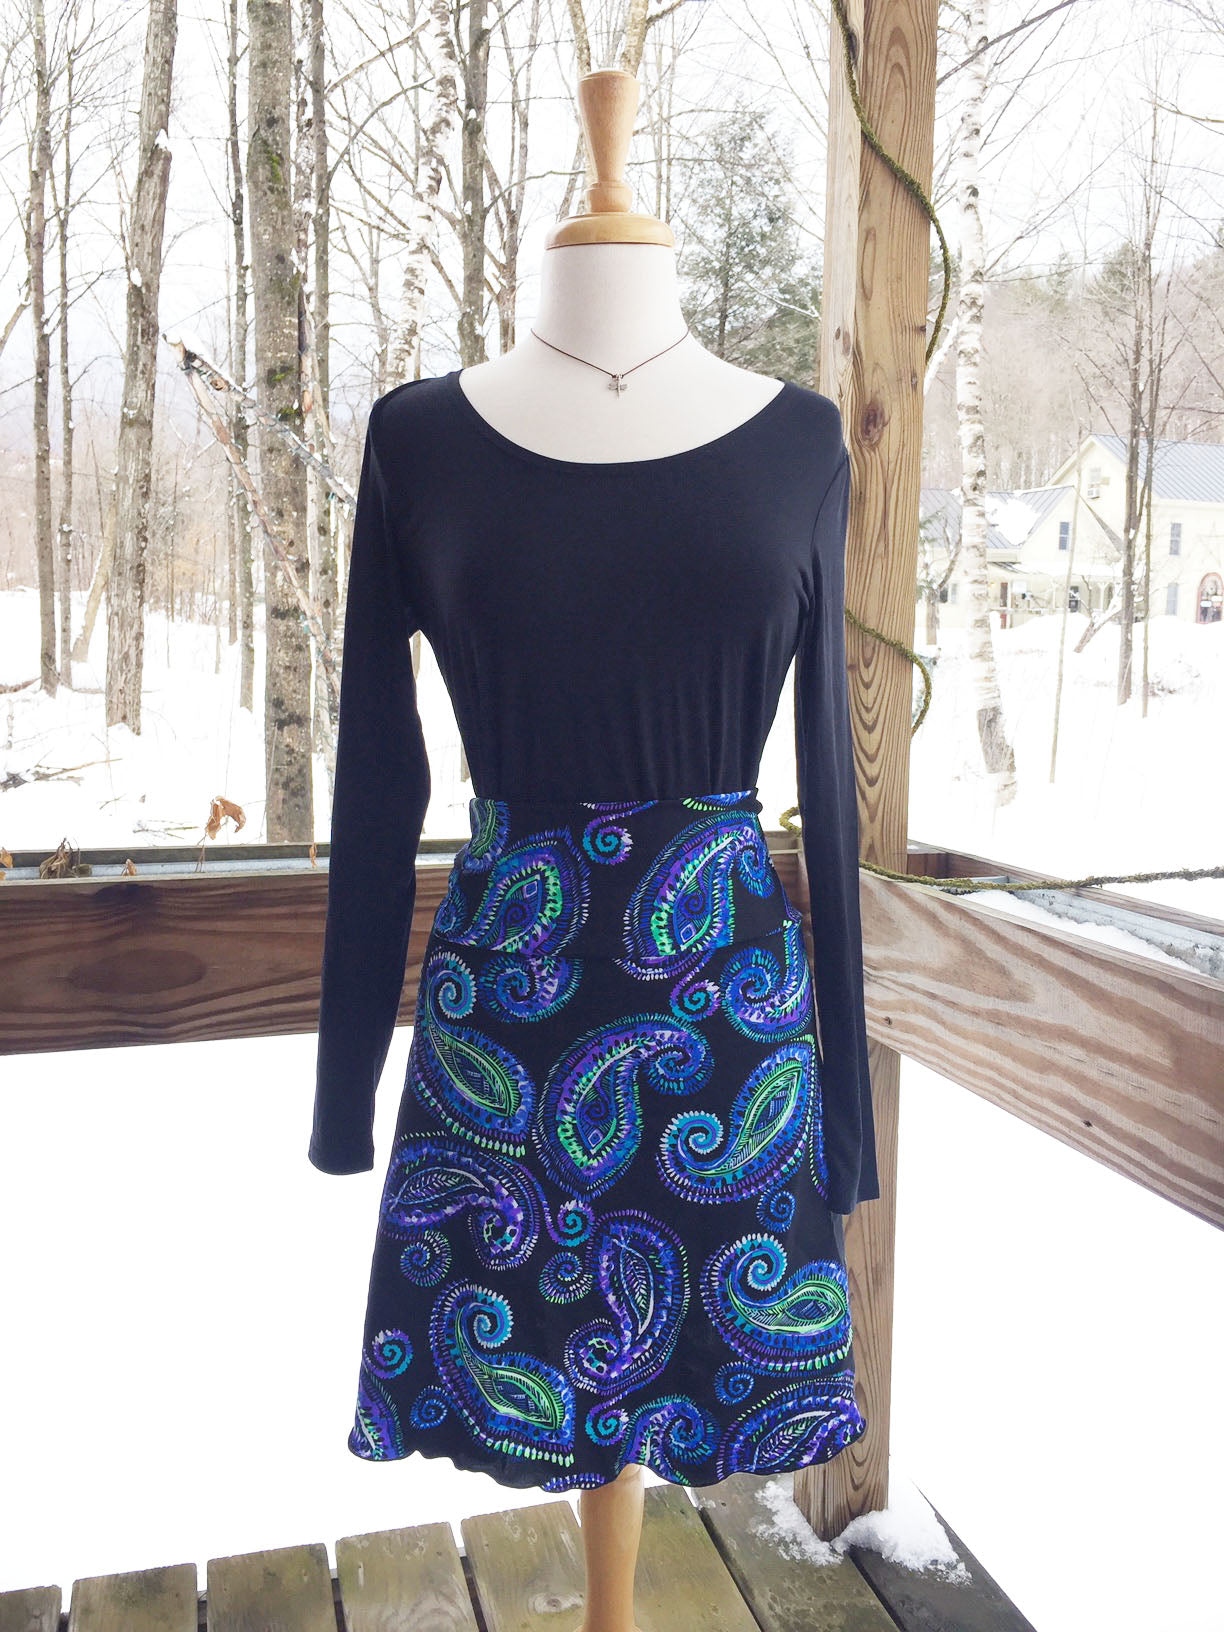 Reign Vermont Adventure Skirt in Paisley on Black